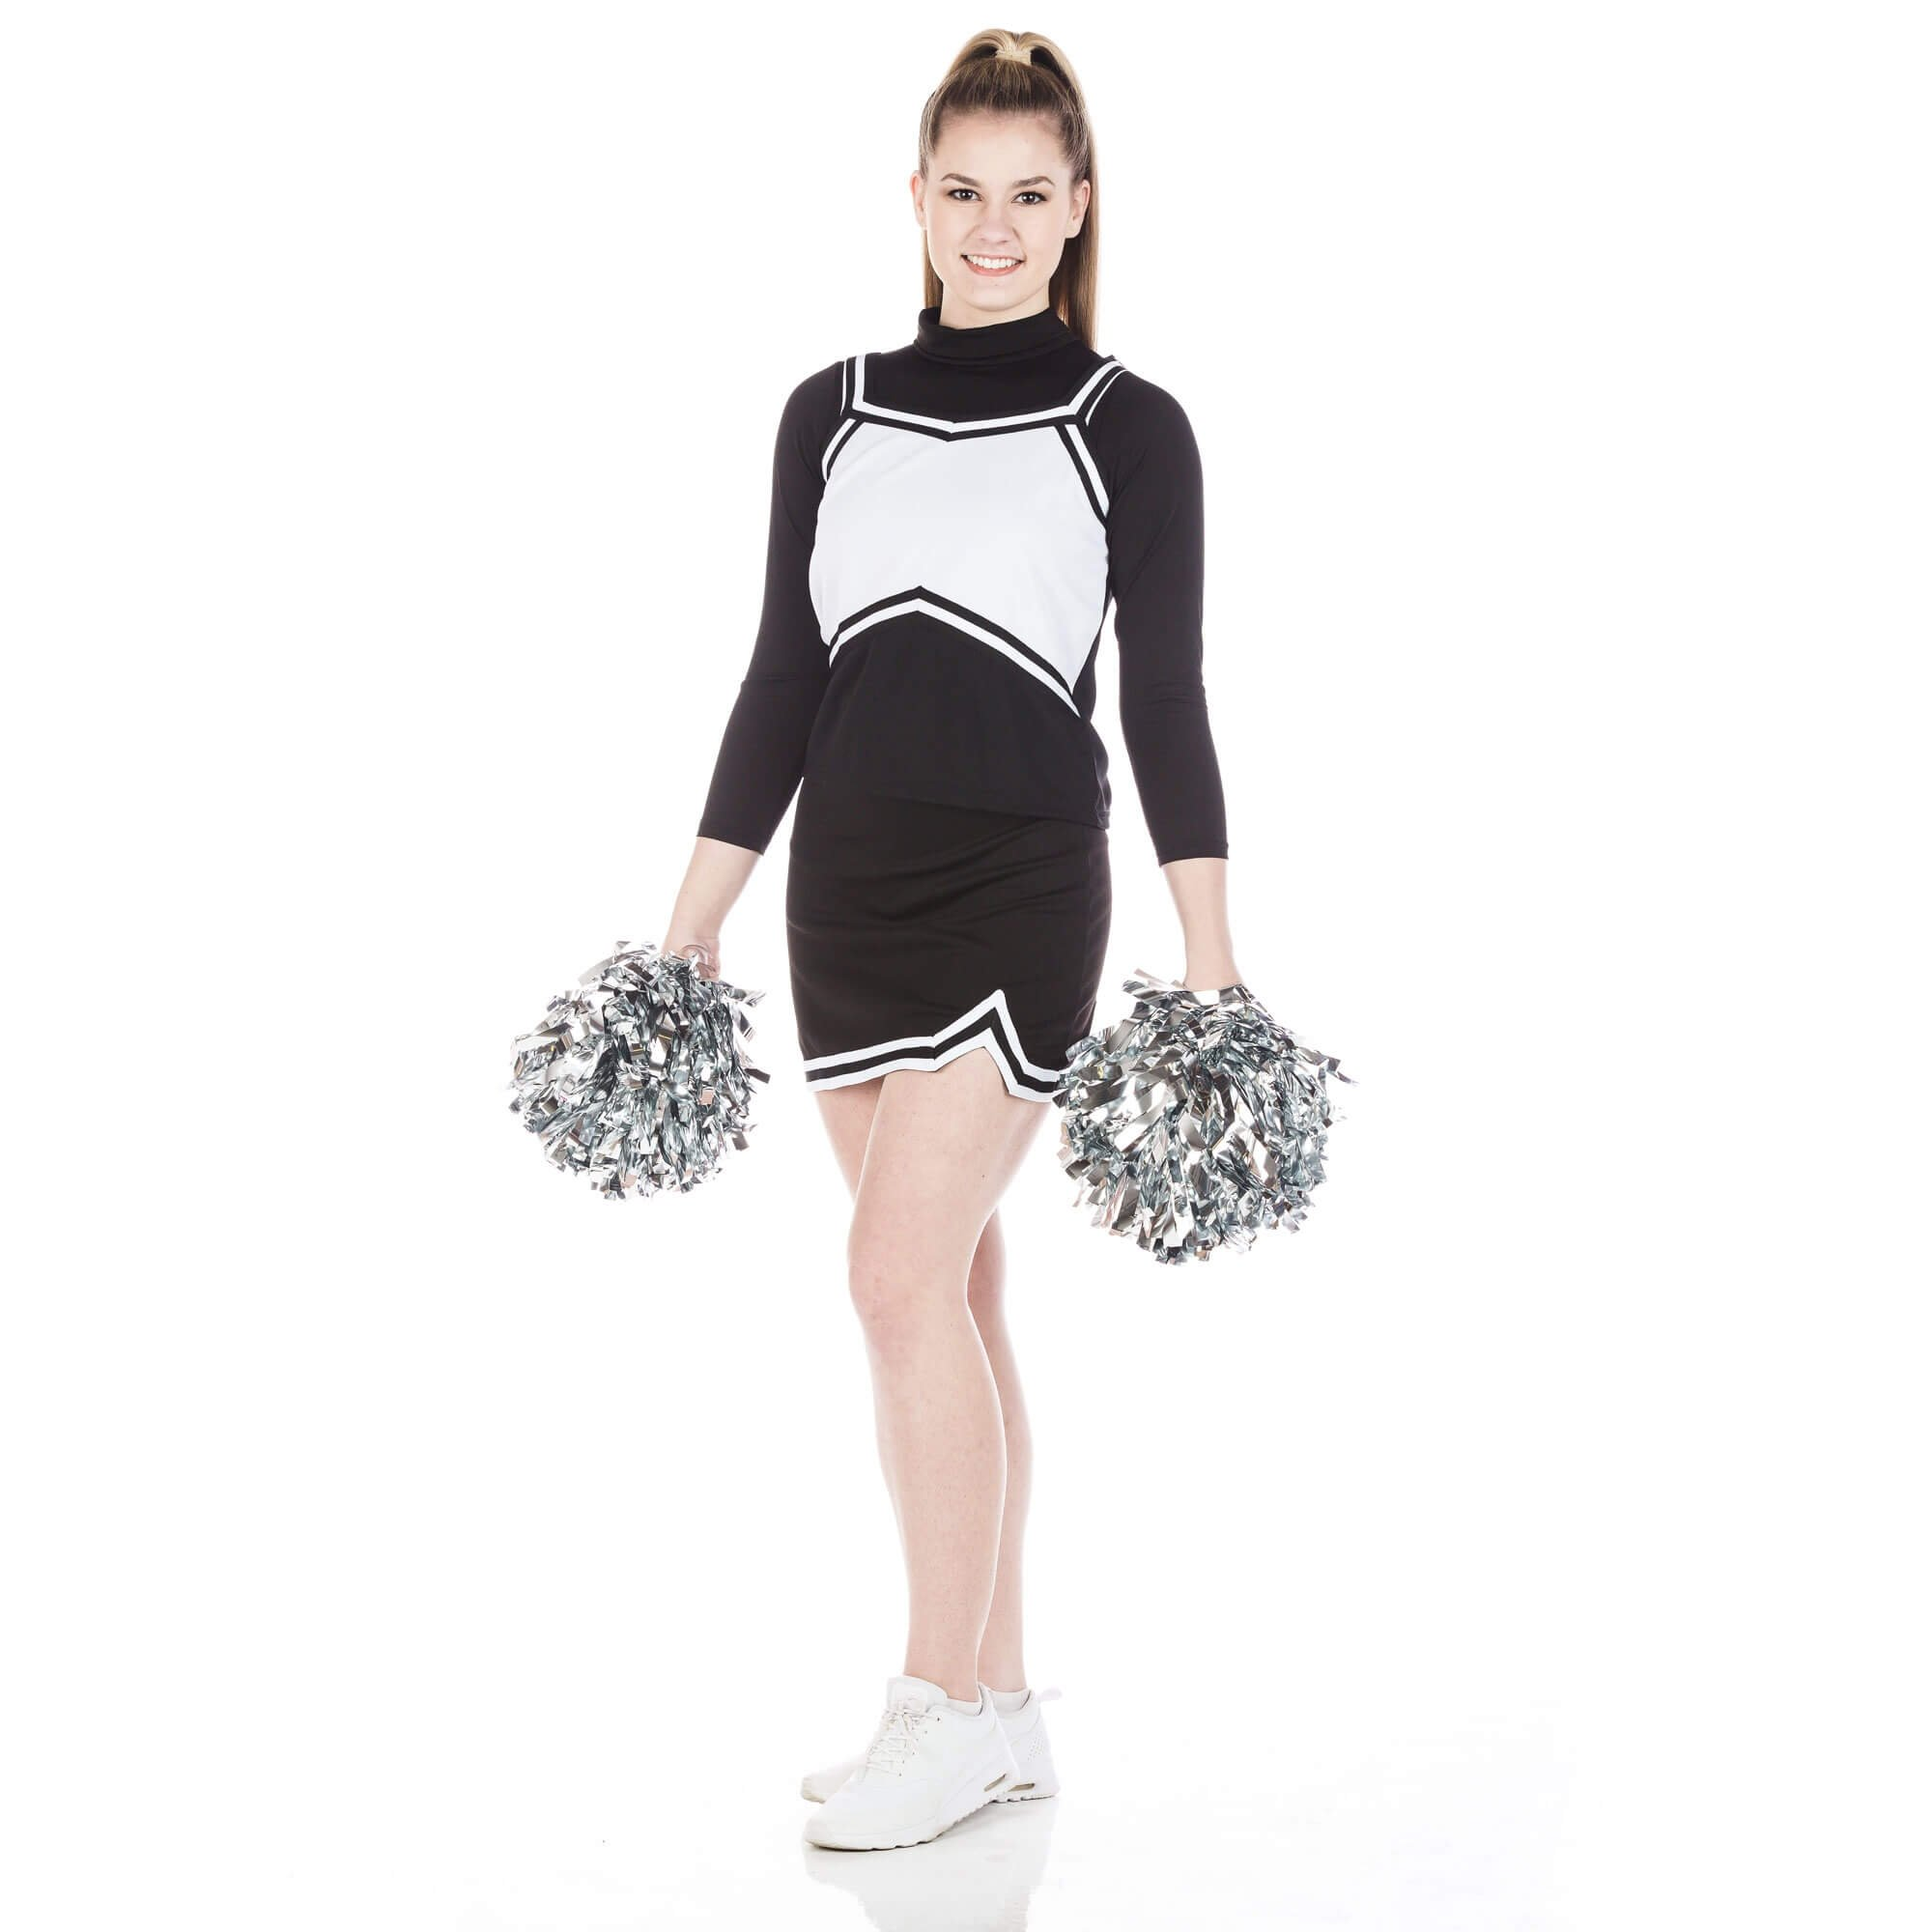 Danzcue Adult Sweetheart Cheerleaders Uniform Set